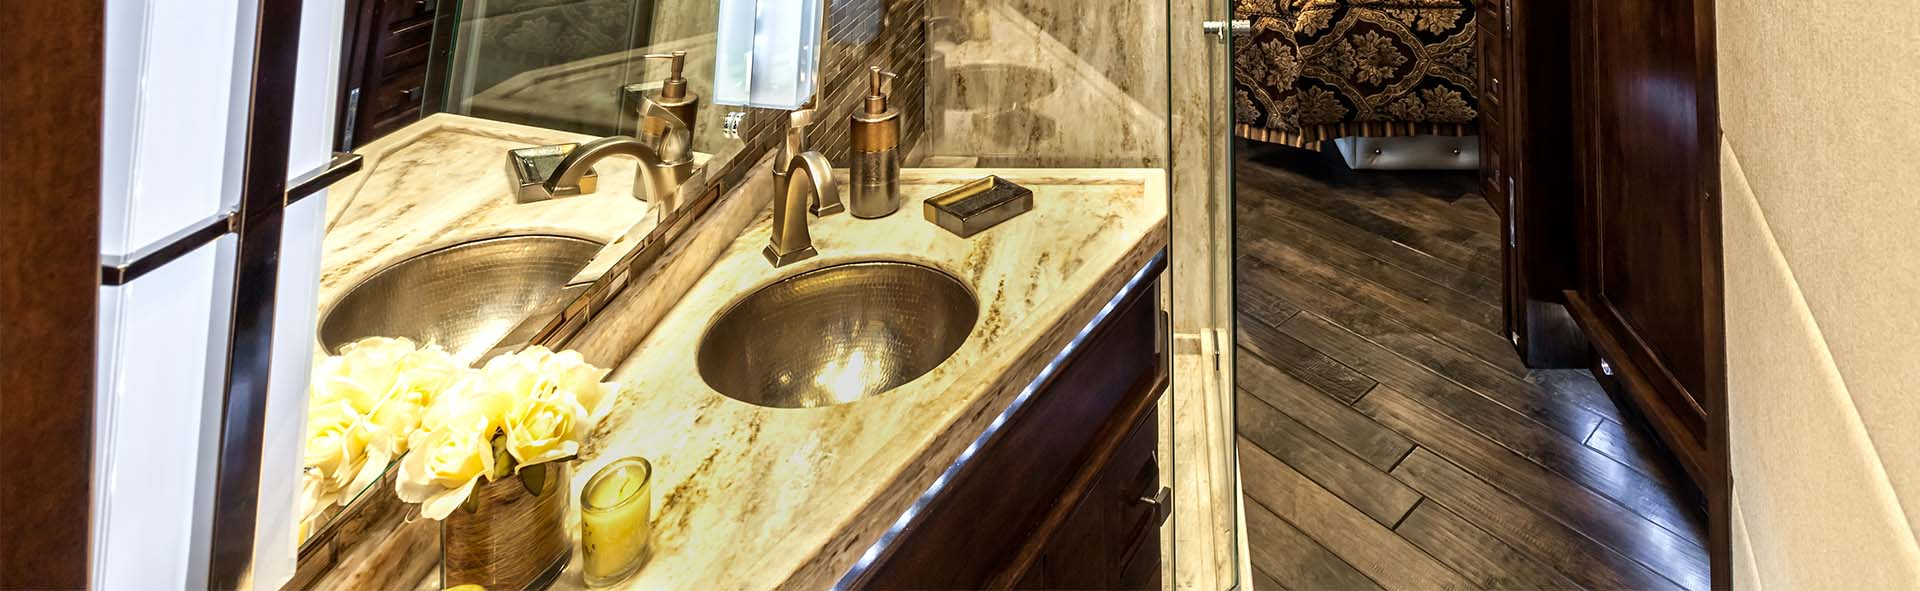 tips-to-keep-your-rv-clean